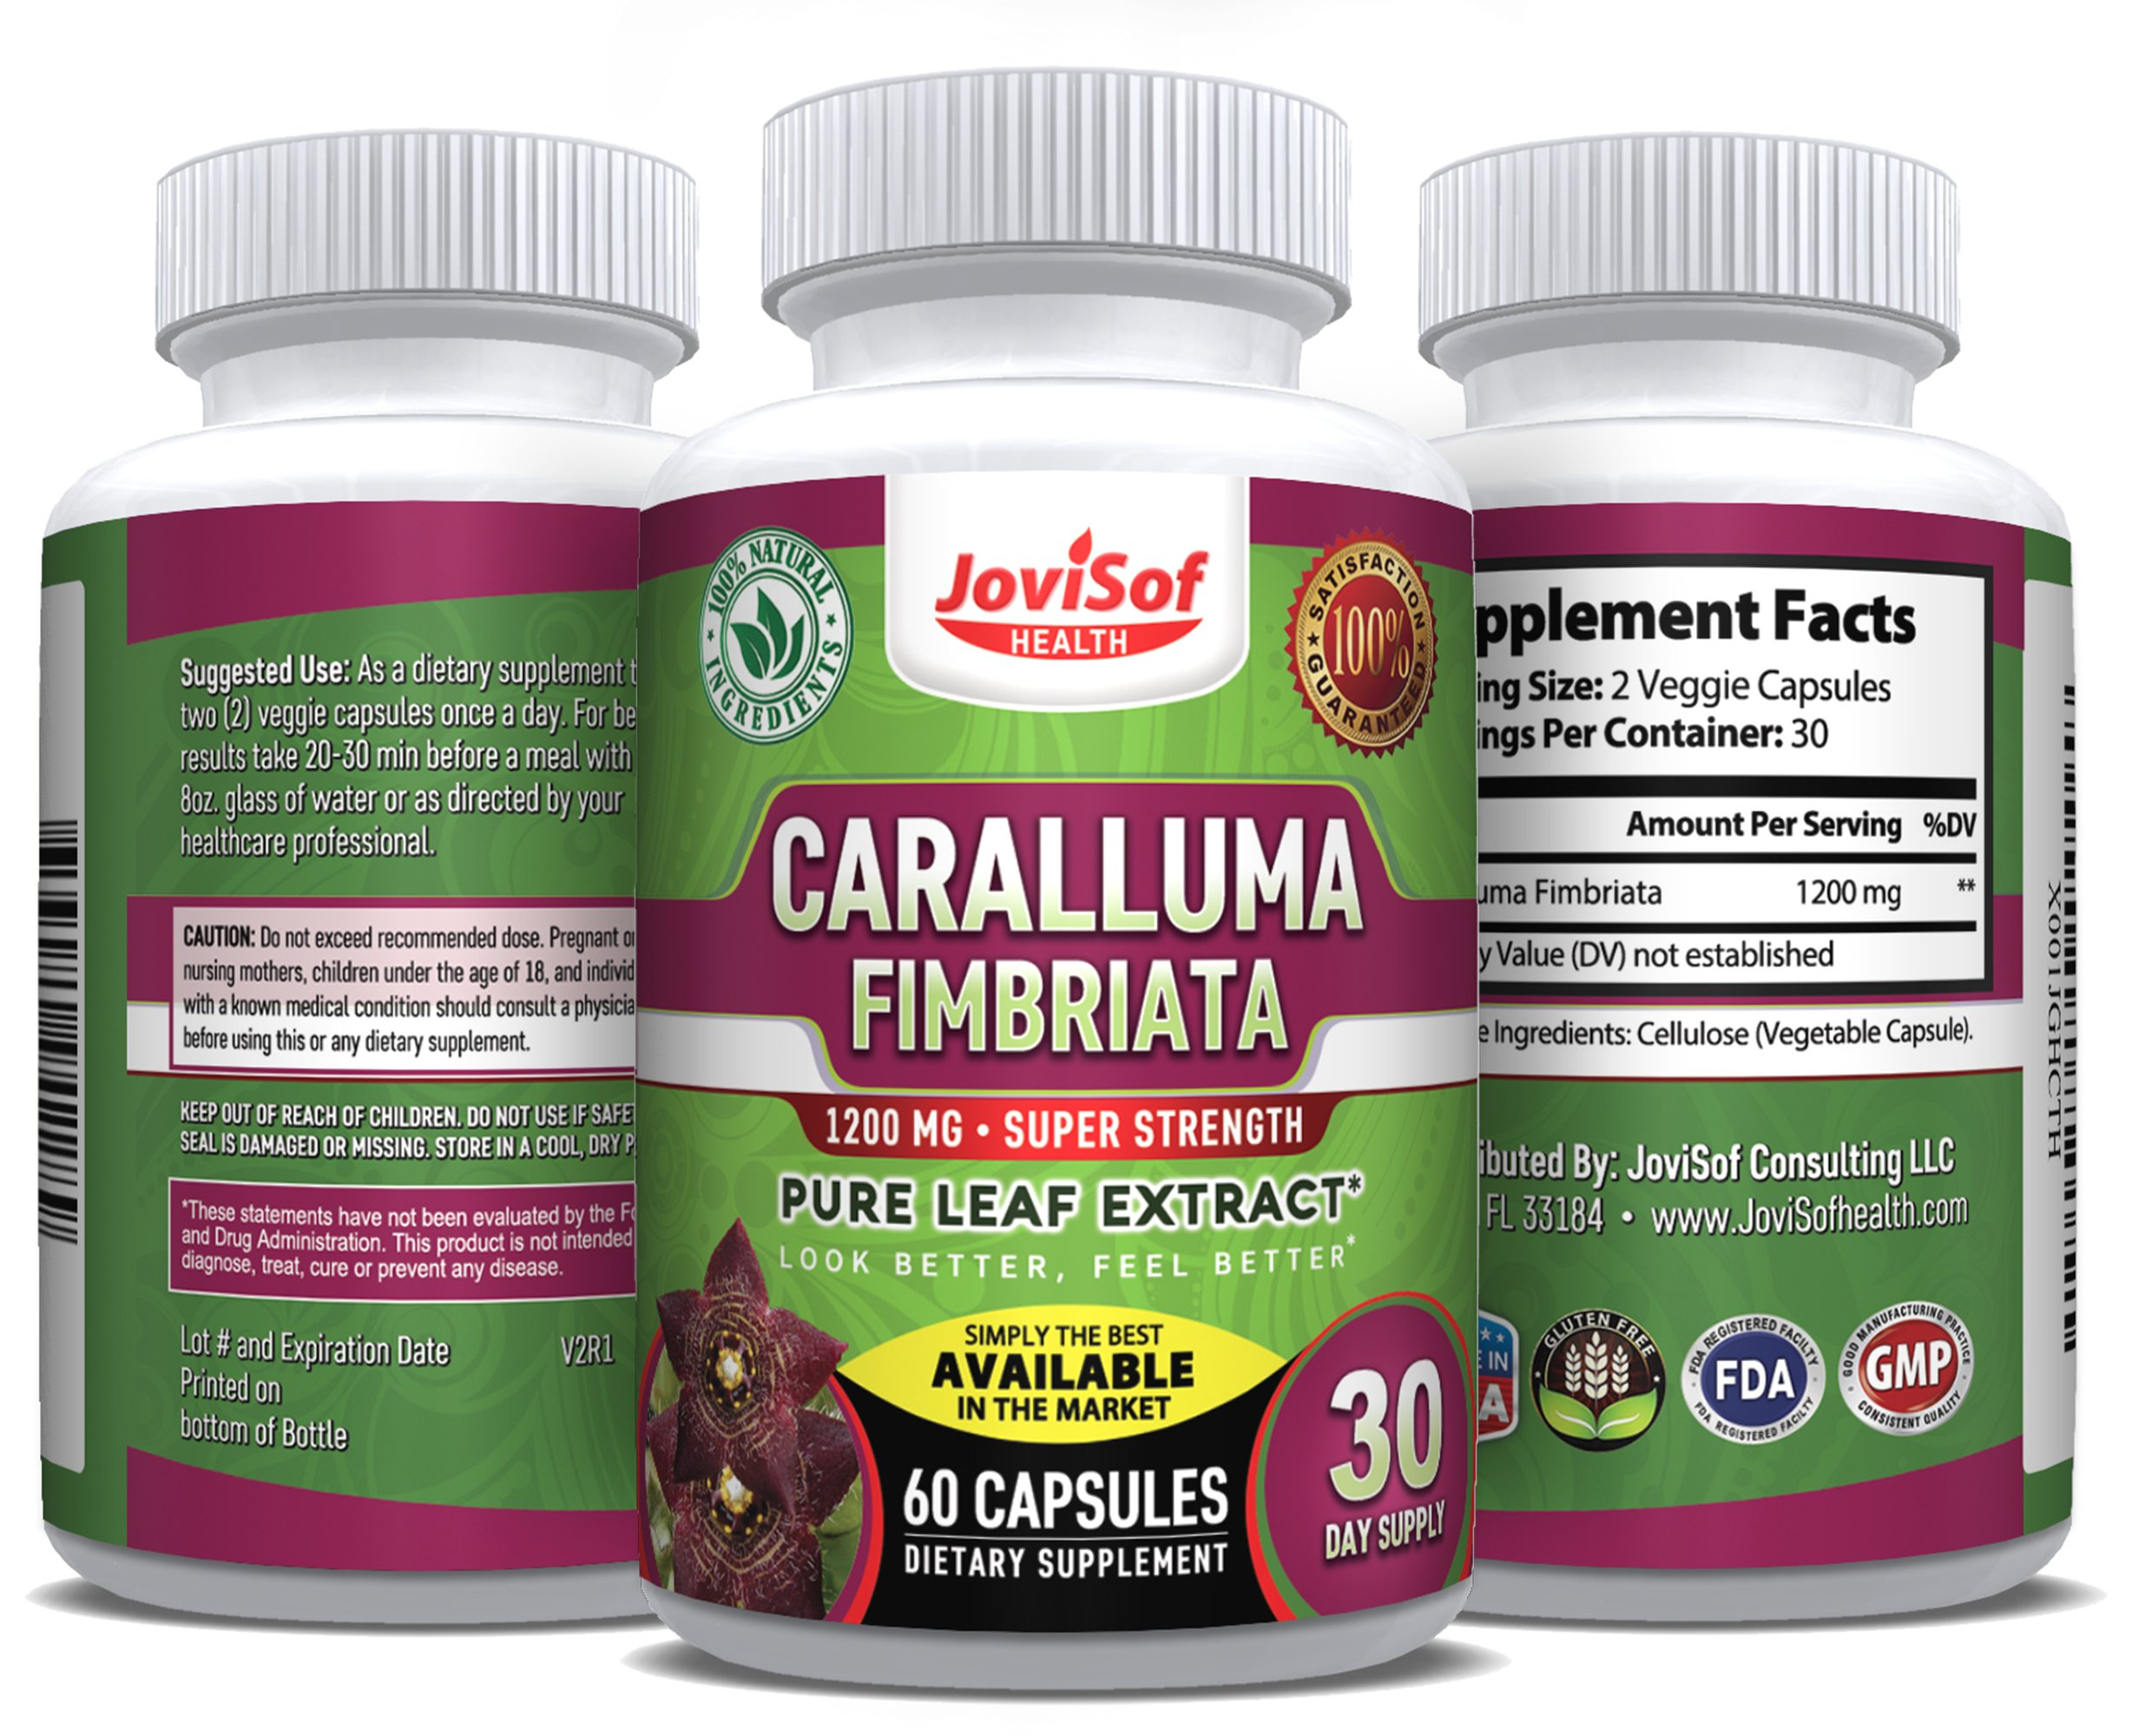 Caralluma Fimbriata Leaf Extract 1200 Mg.Super Strength   Best Weight Loss Pills   Lose Weight Fast   Fat-Carb Blocker  Block Fat Intake   Build Lean Muscle